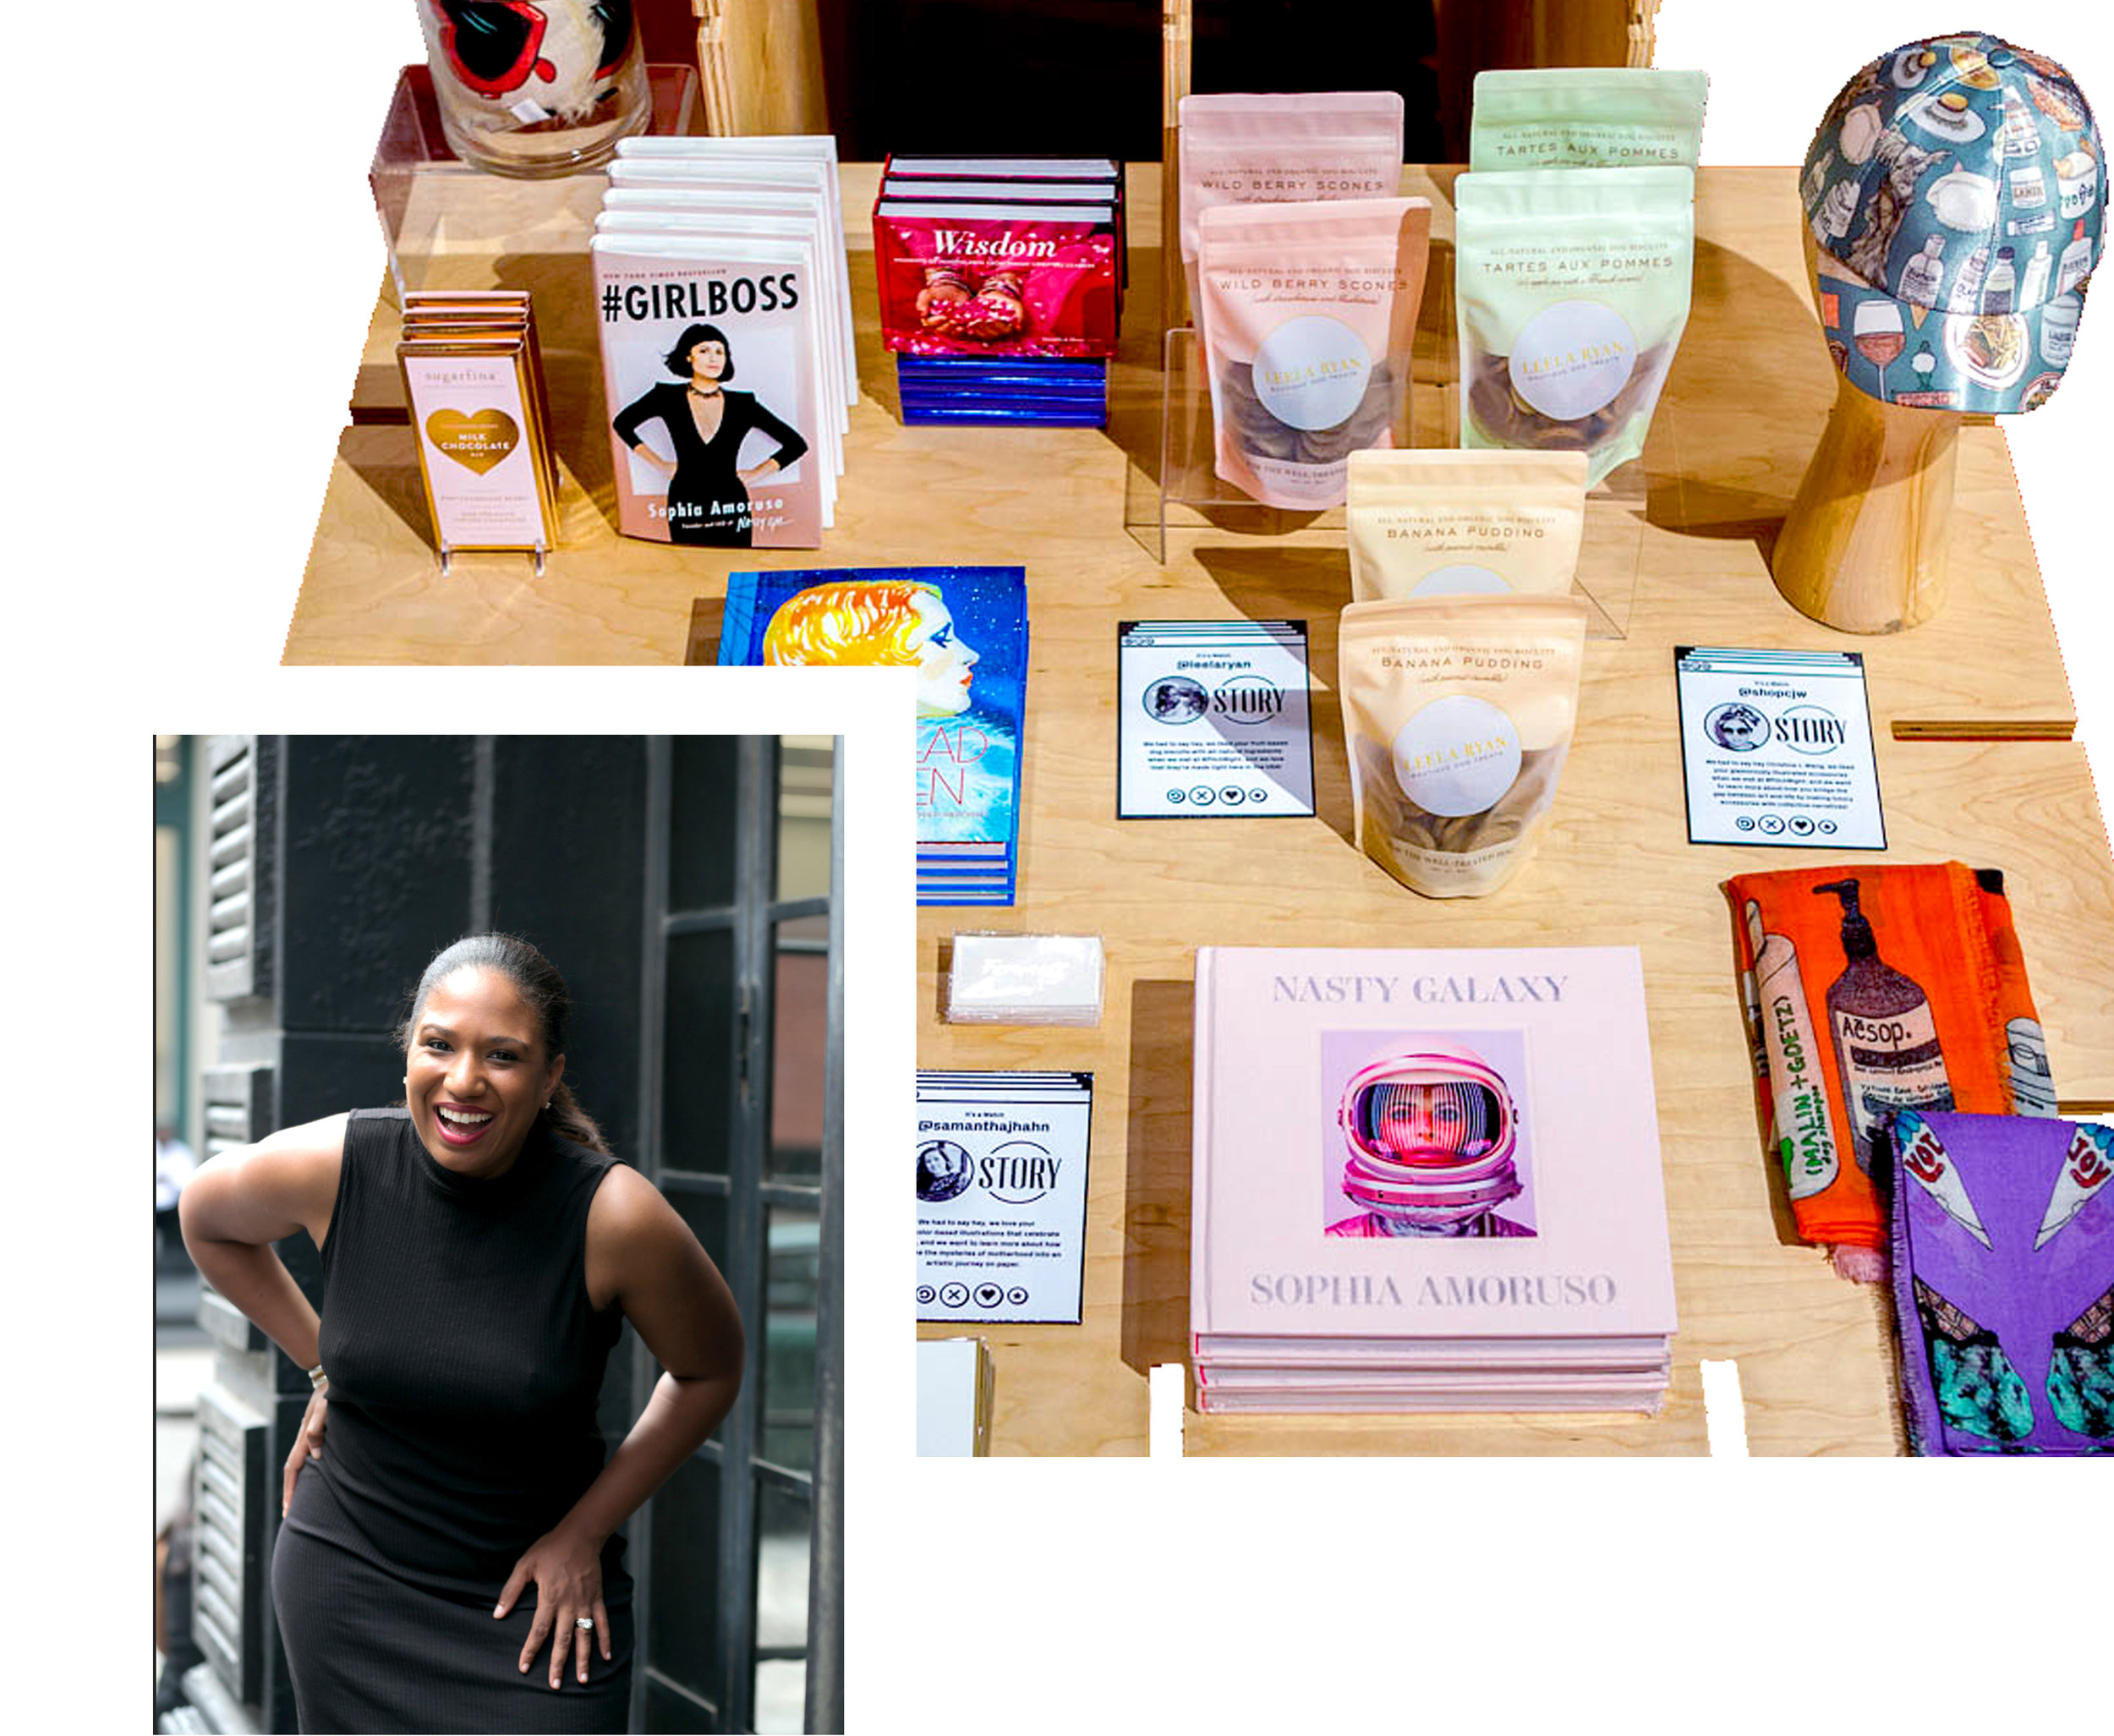 LET'S GET YOUR PRODUCTS IN RETAIL STORES - Find out what successful product-based entrepreneurs know that you don't.